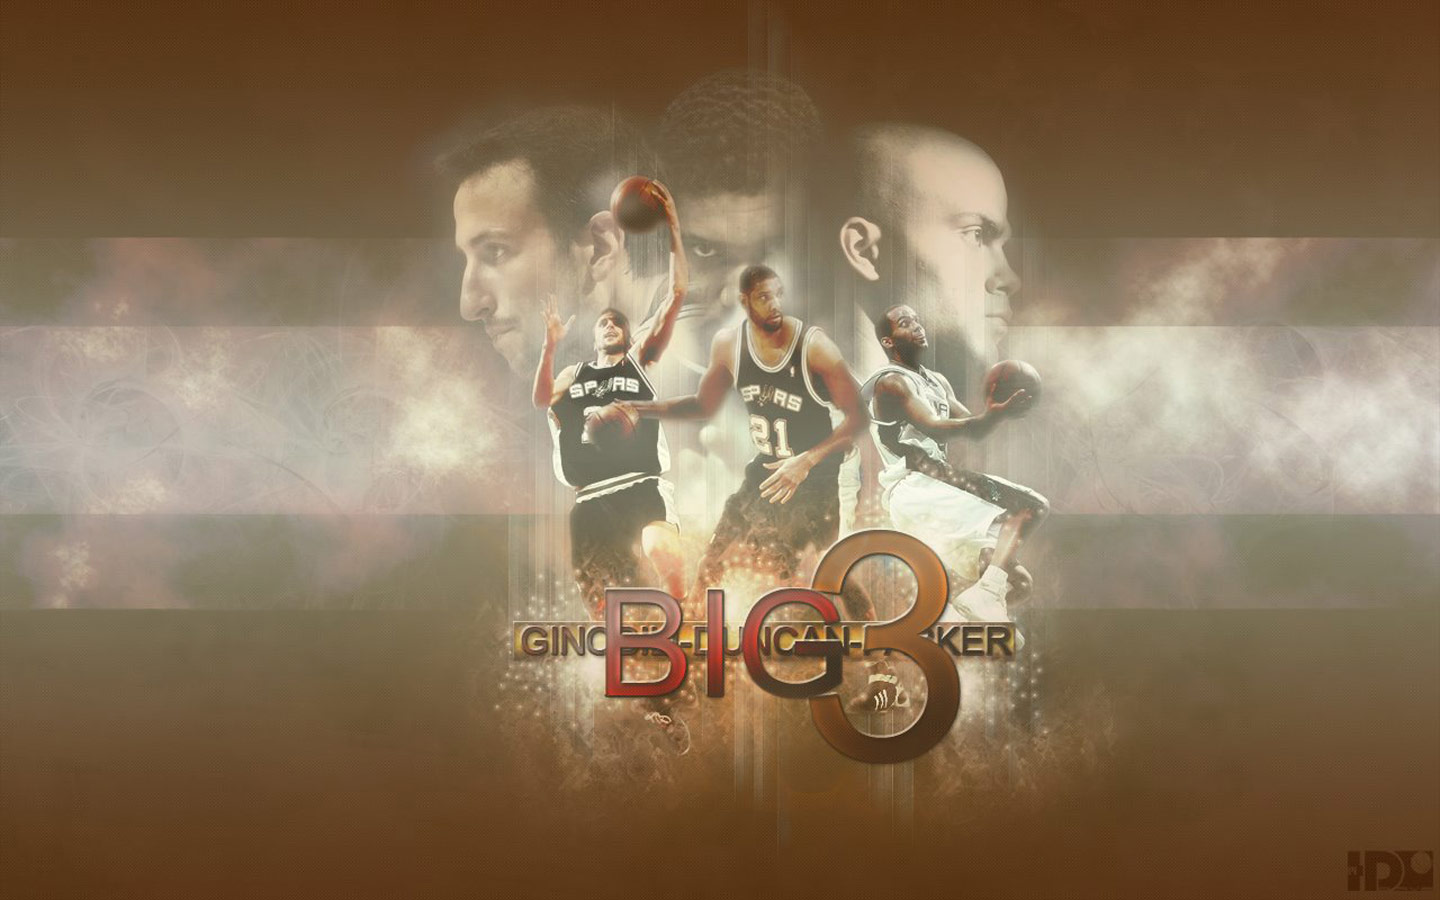 Here's new wallpaper of San Antonio Spurs, featuring Spurs big 3 - Tim ...